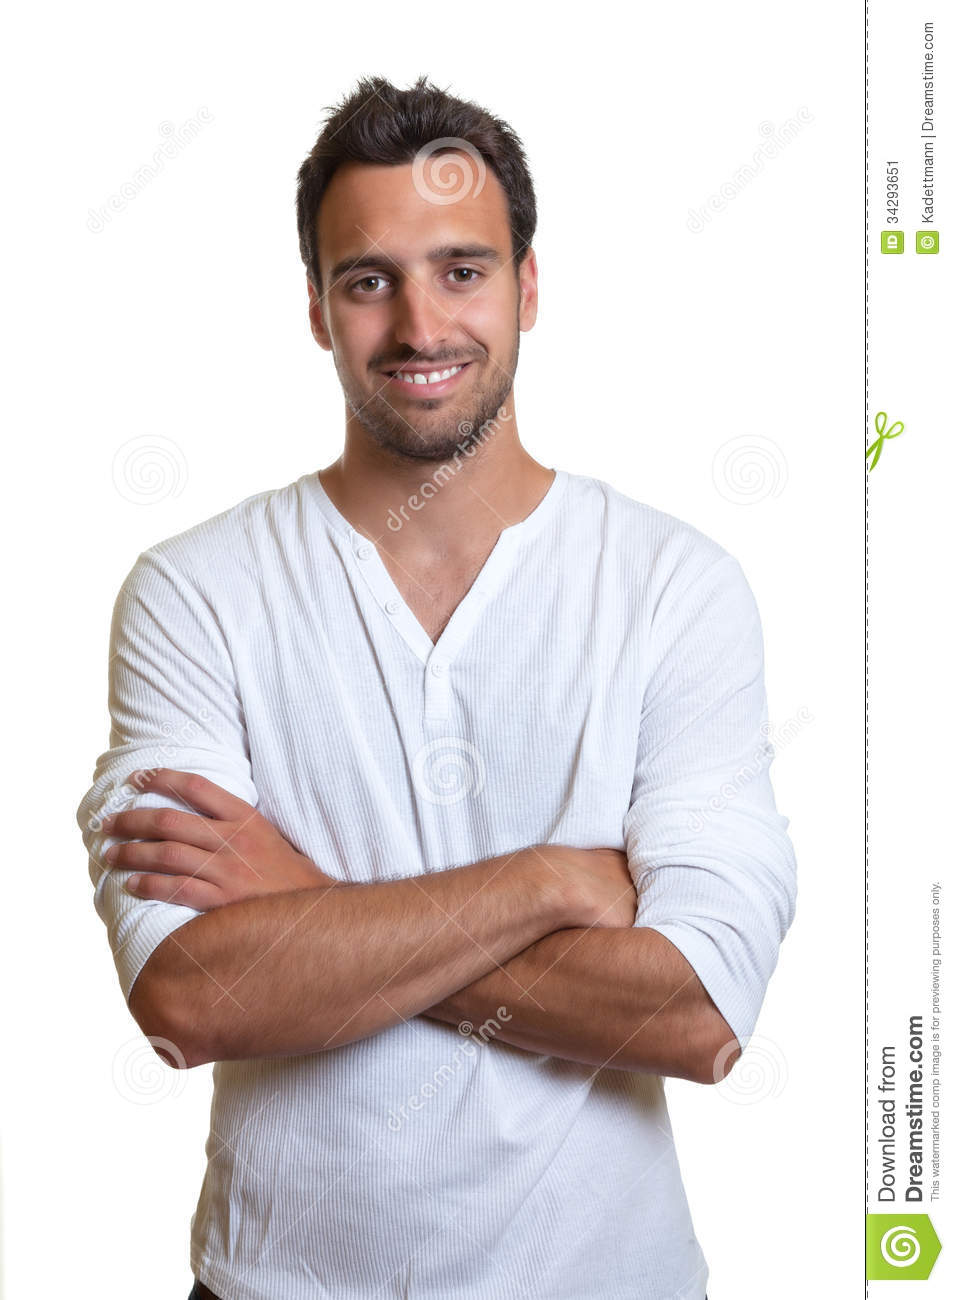 standing latin man in a white shirt stock image   image 34293651